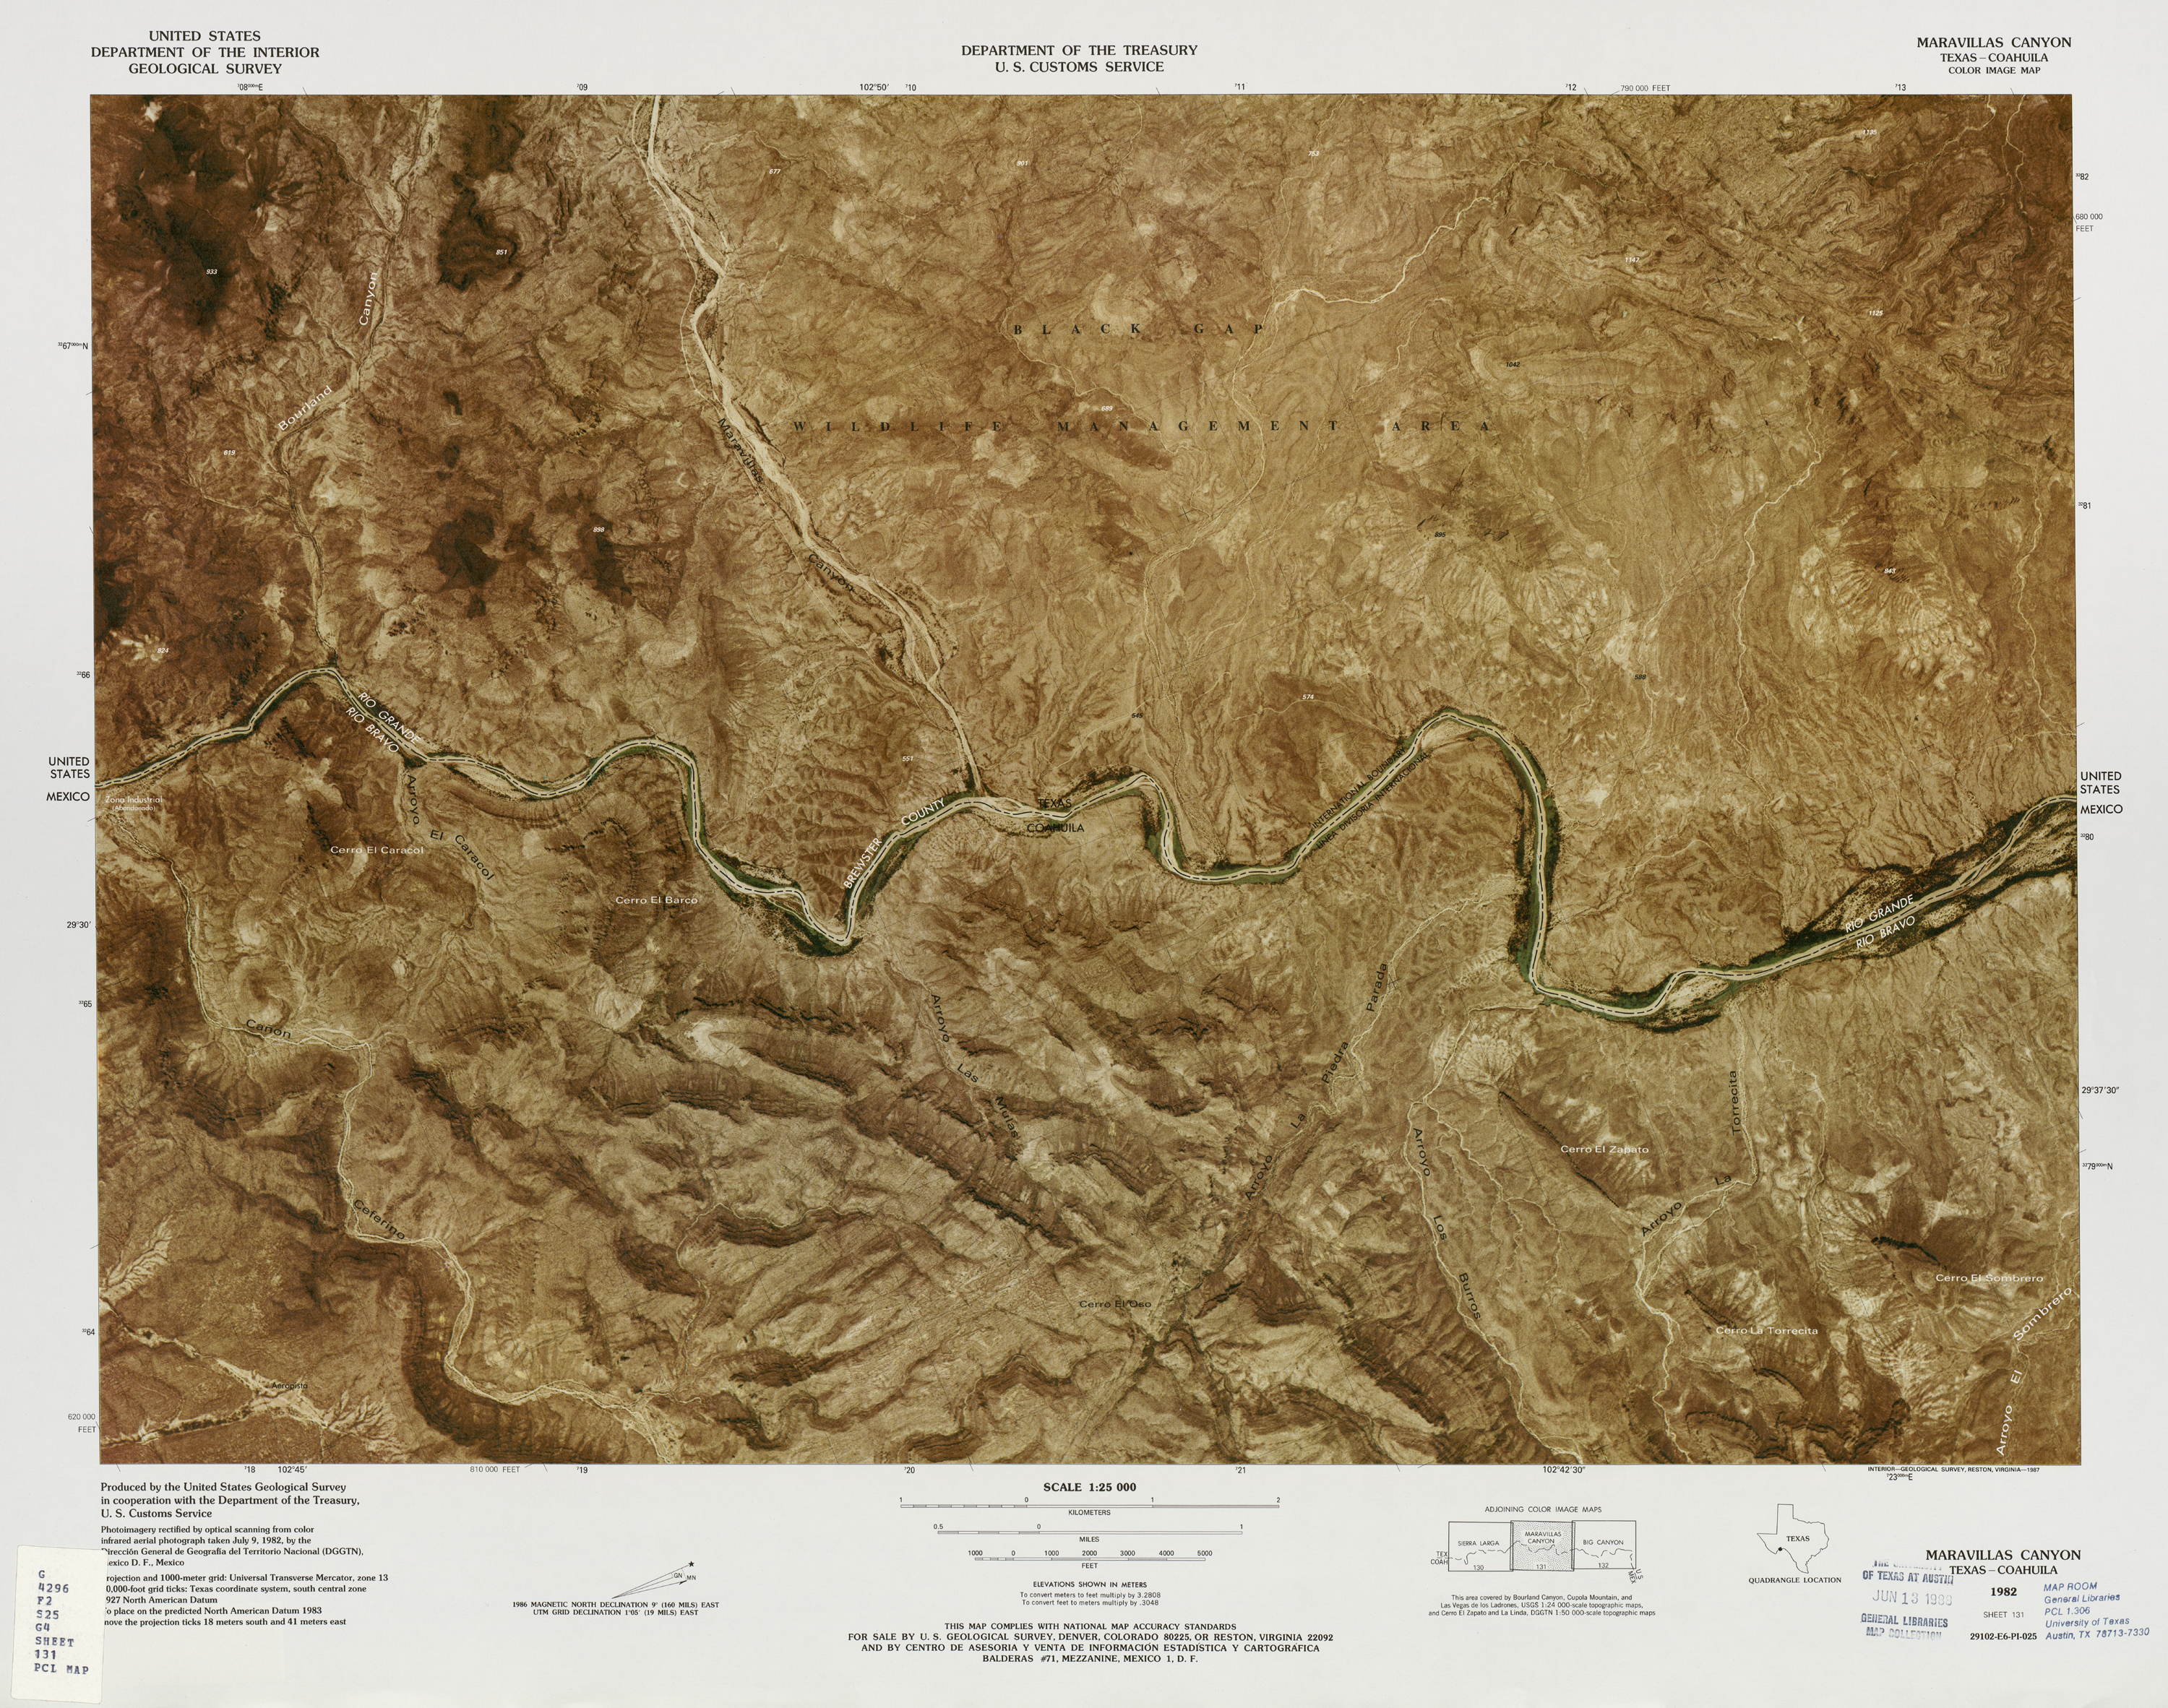 United States-Mexico Border Map, Maravillas Canyon